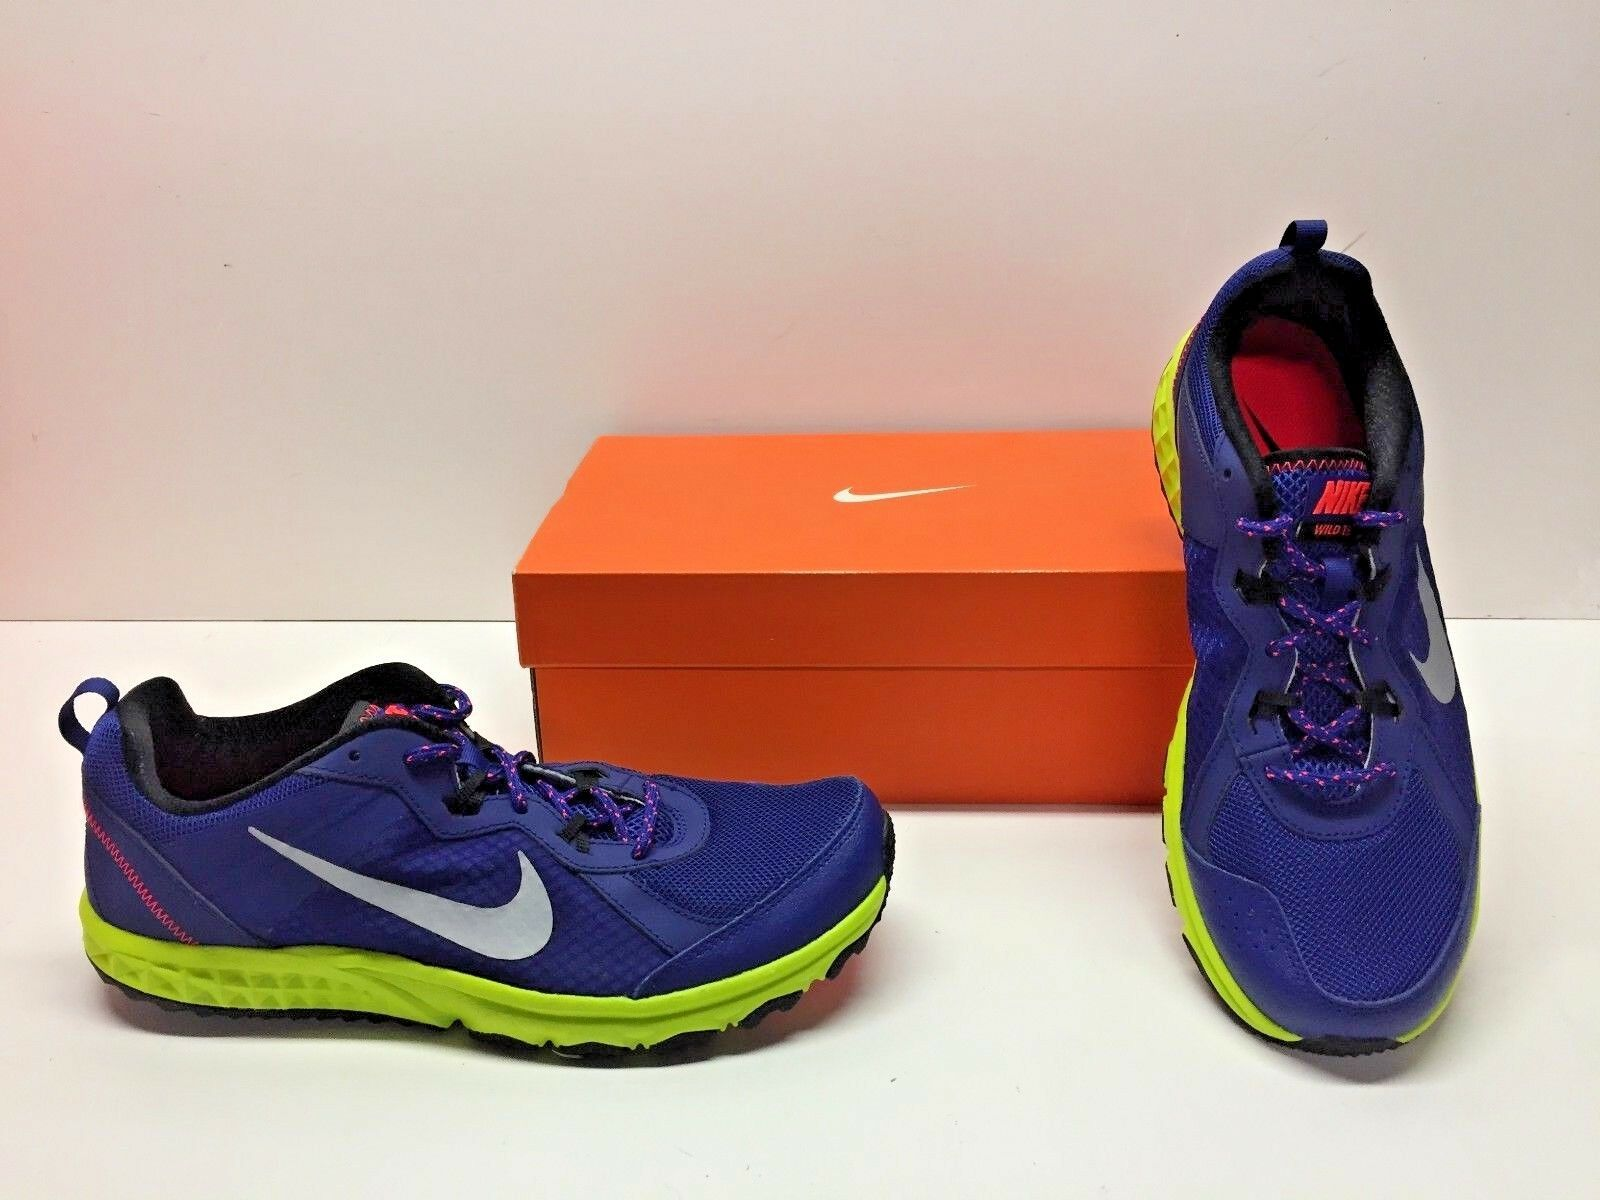 Nike Wild Wild Nike Trail Running Cross Training Blue Athletic Sneakers Shoes Mens 10 9575d0